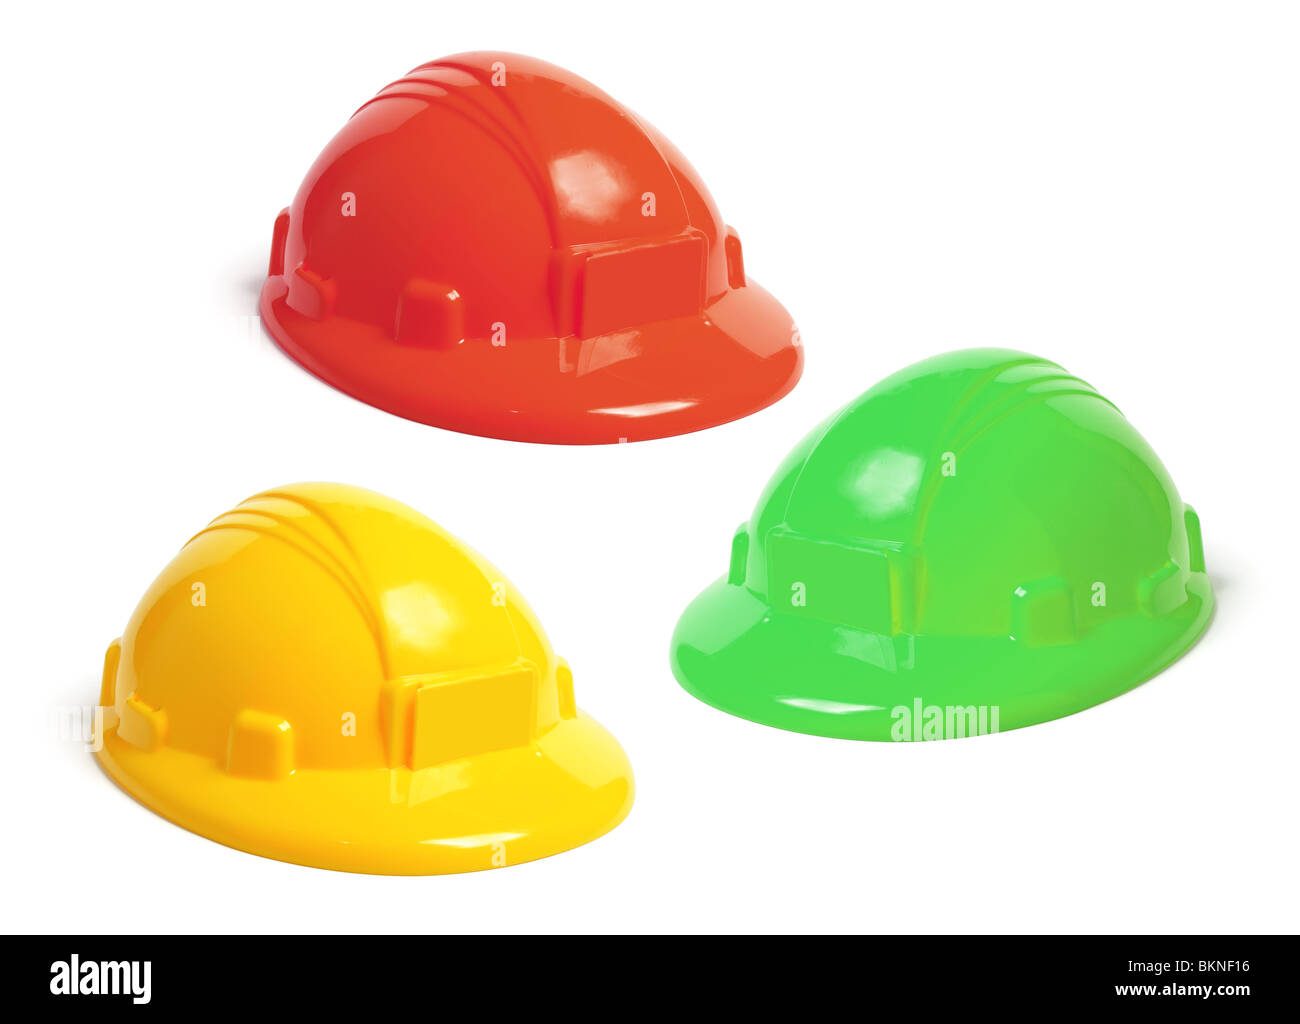 Toys For Caps : Toy hard hats stock photo royalty free image